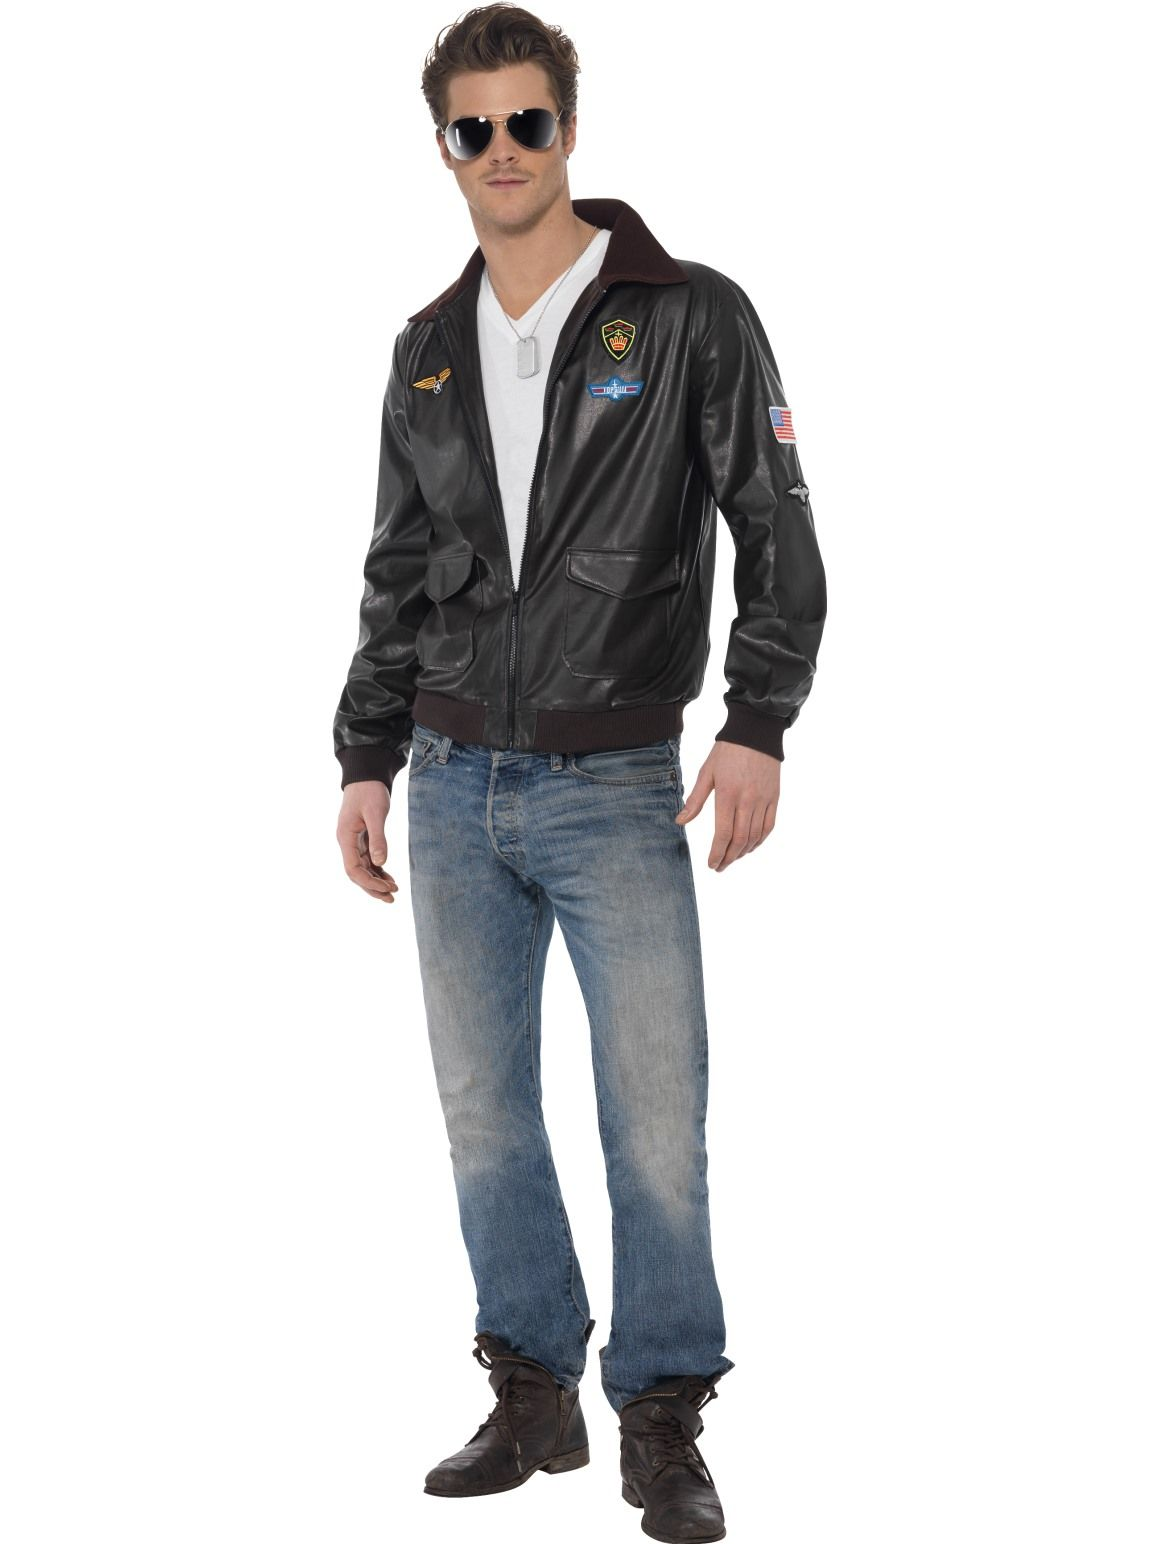 Top Gun Bomber Jacket - Buy Online Only